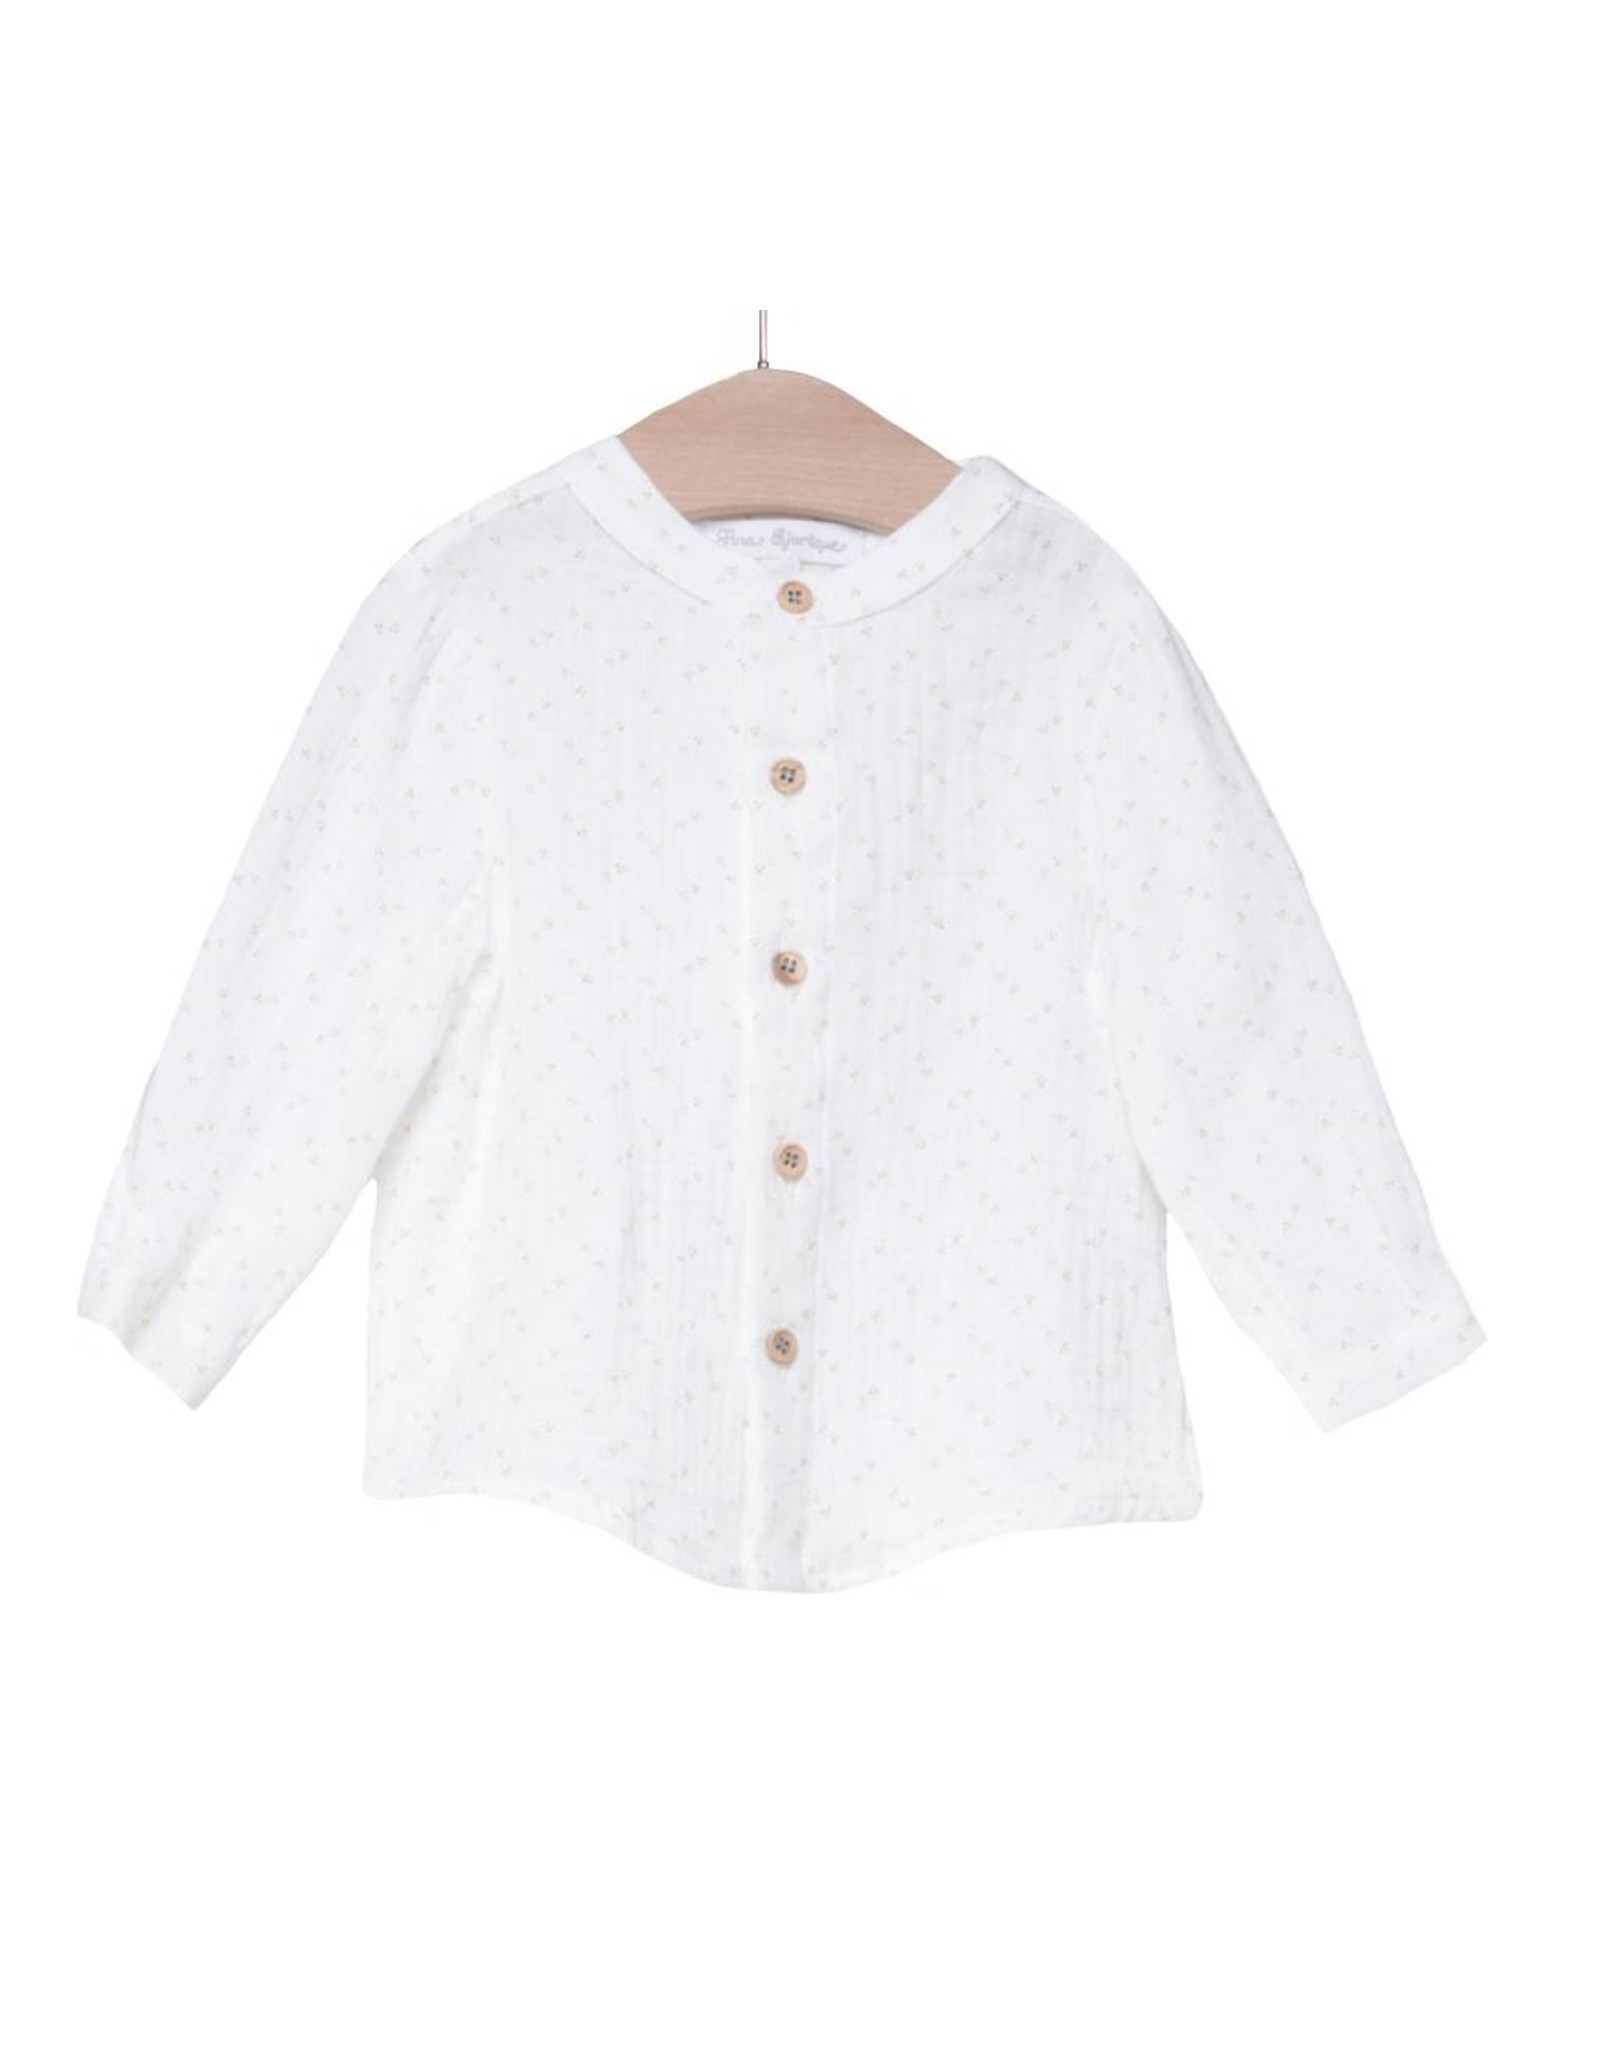 FINA EJERIQUE White Long Sleeve Shirt